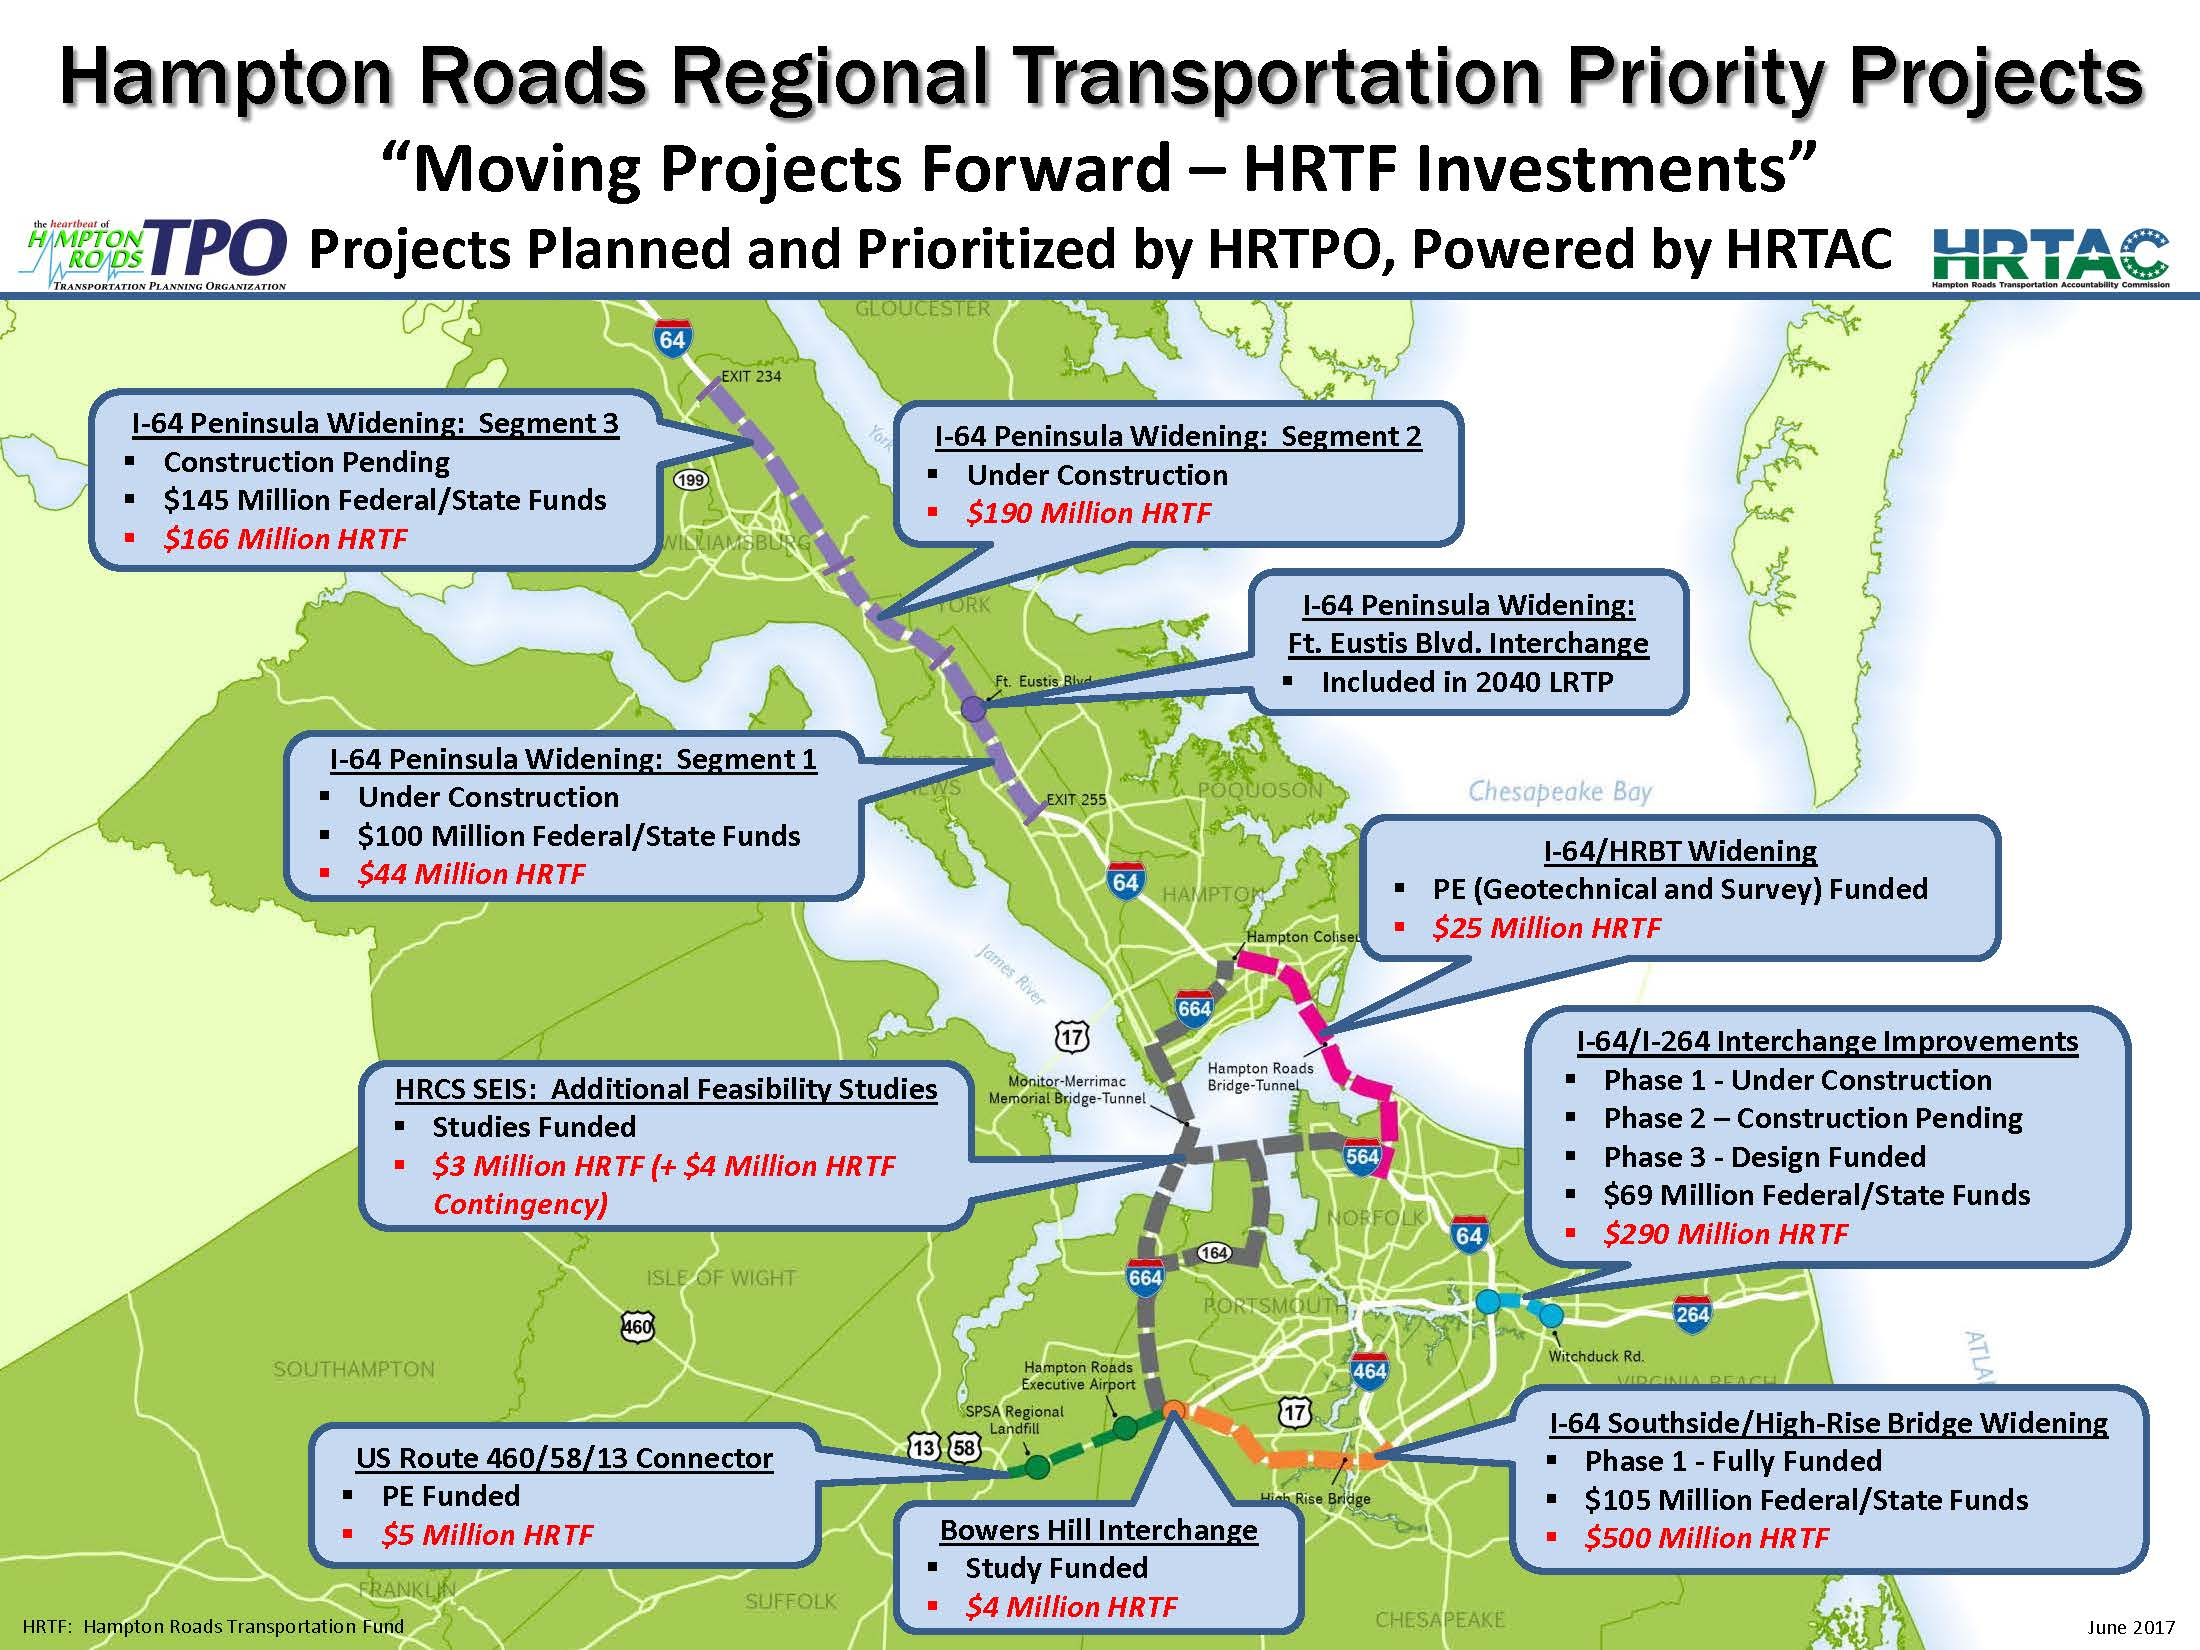 Regional Priority Projects